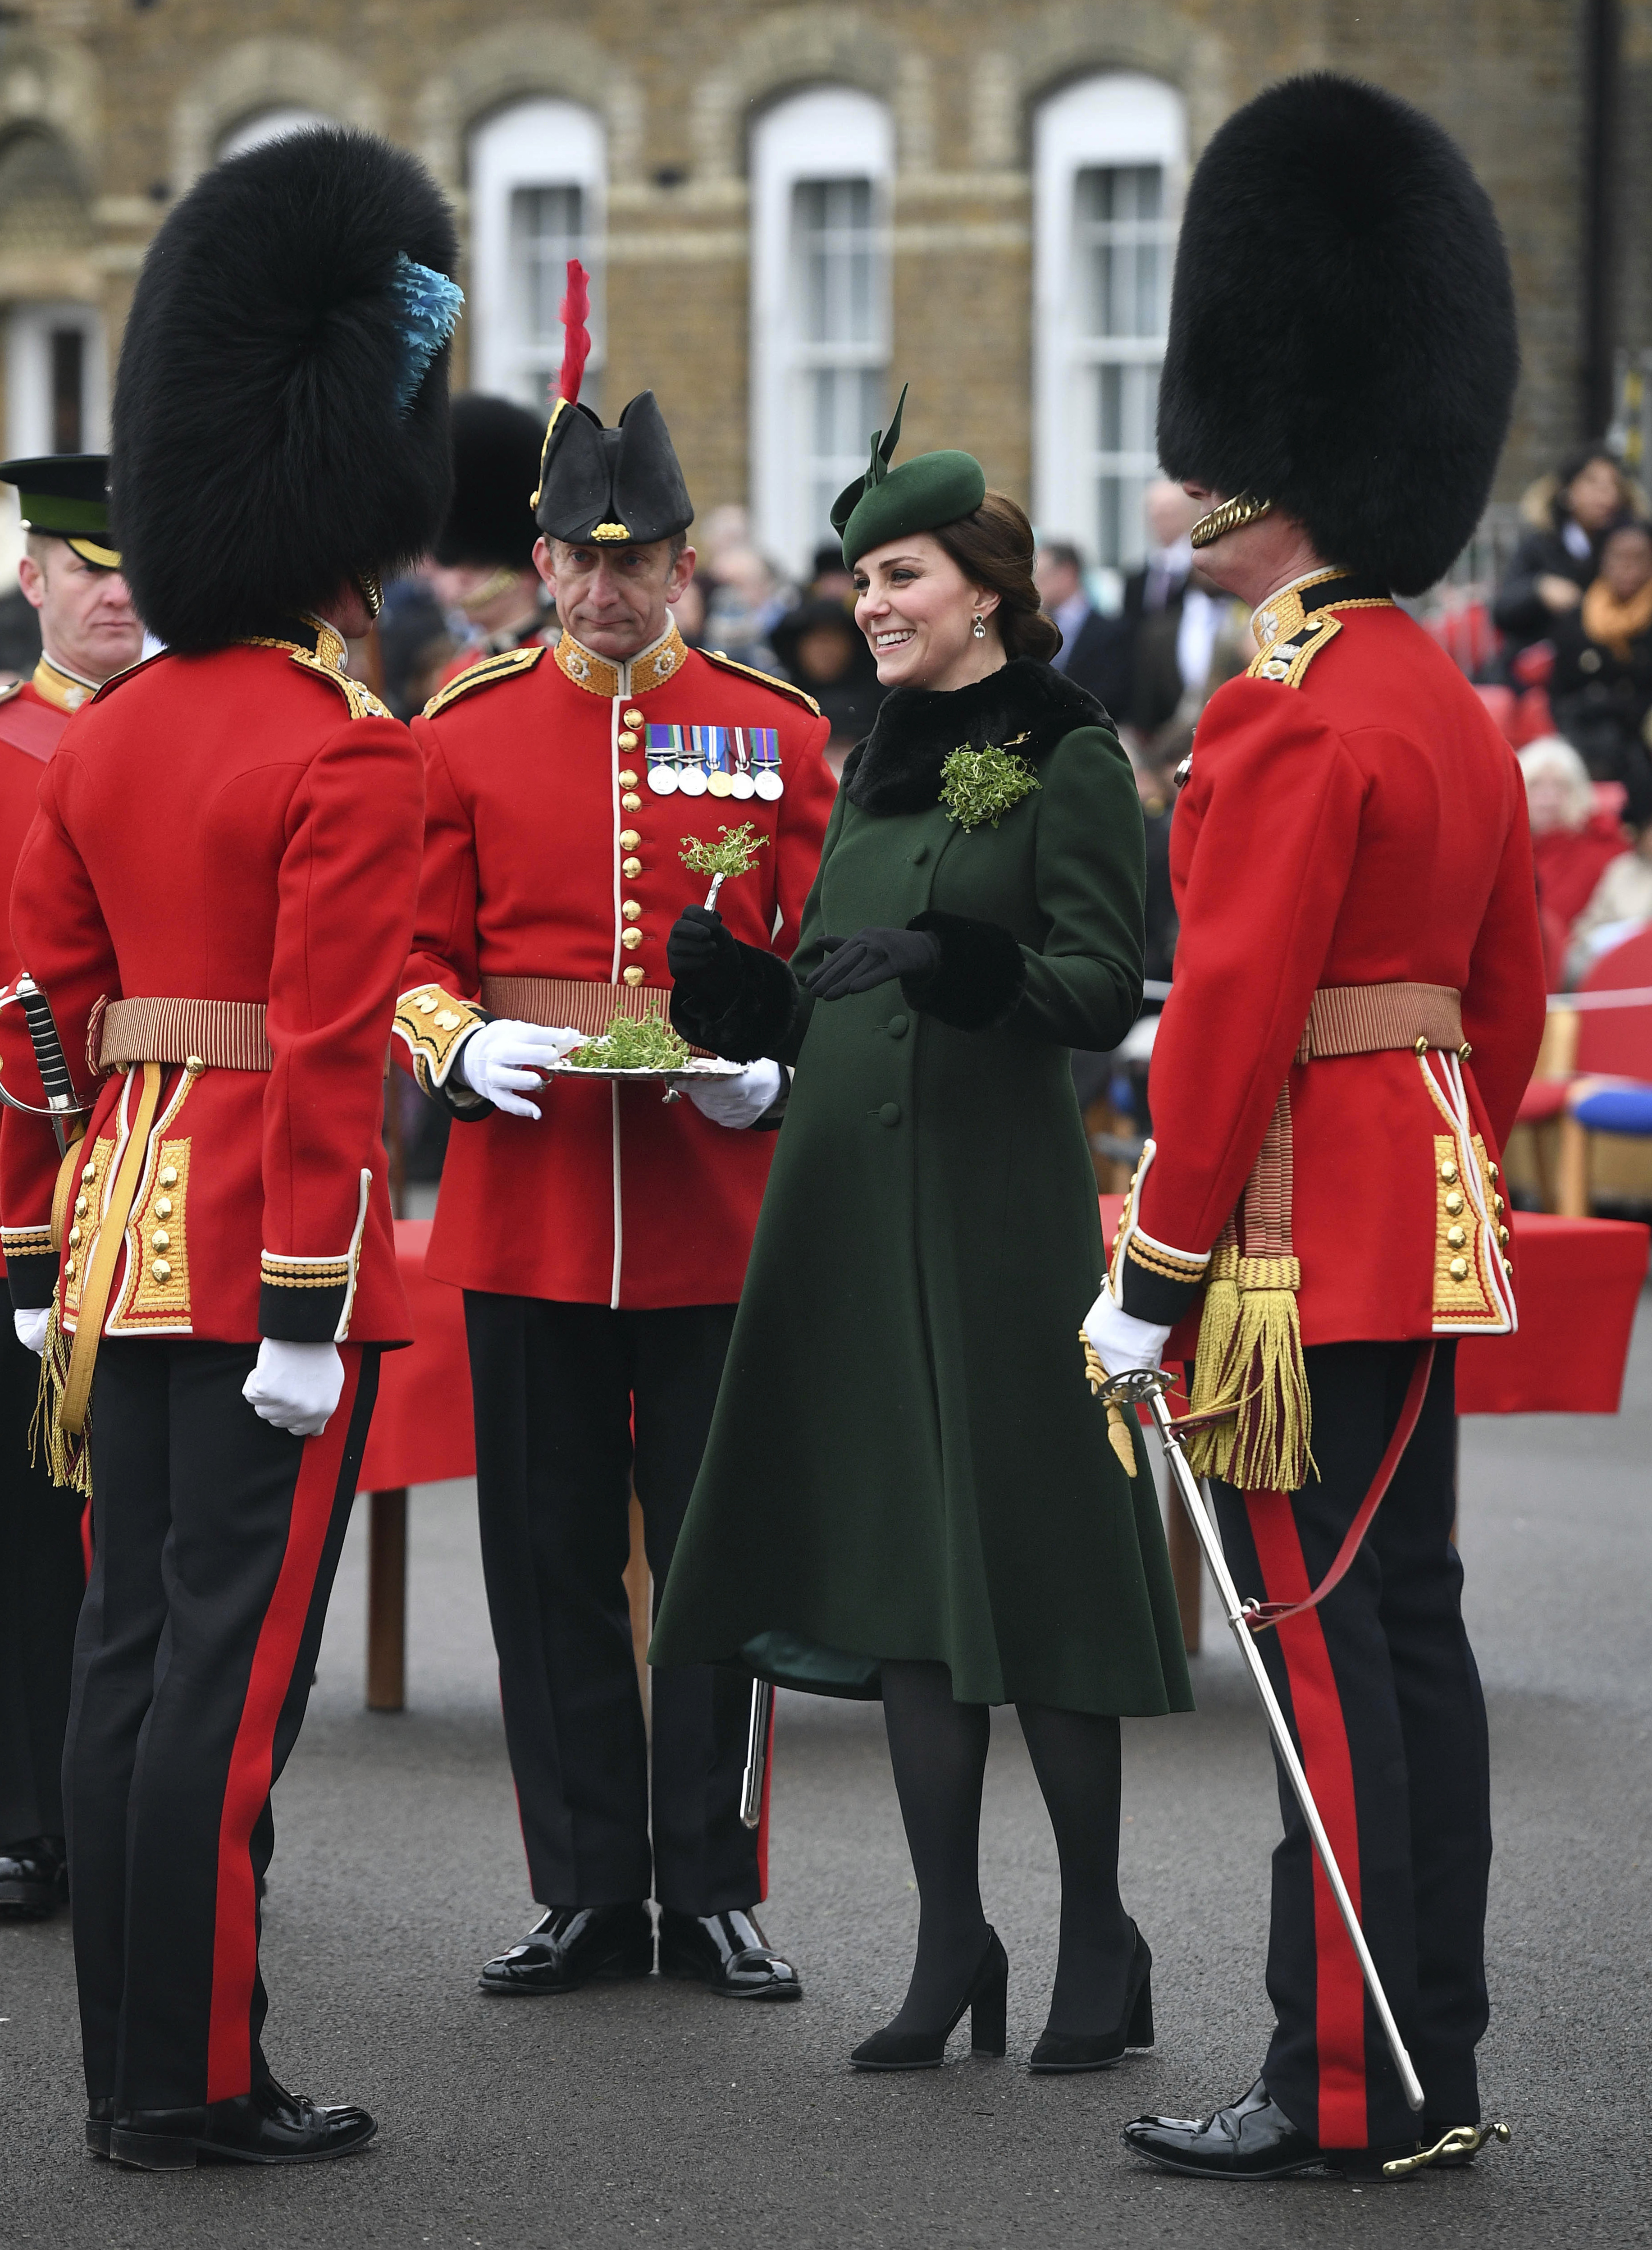 "<div class=""meta image-caption""><div class=""origin-logo origin-image none""><span>none</span></div><span class=""caption-text"">Britain's Kate, the Duchess of Cambridge, smiles as she visits the 1st Battalion Irish Guards, for the St. Patrick's Day Parade in Hounslow, England, March 17, 2018. (Andrew Parsons/Pool Photo via AP)</span></div>"